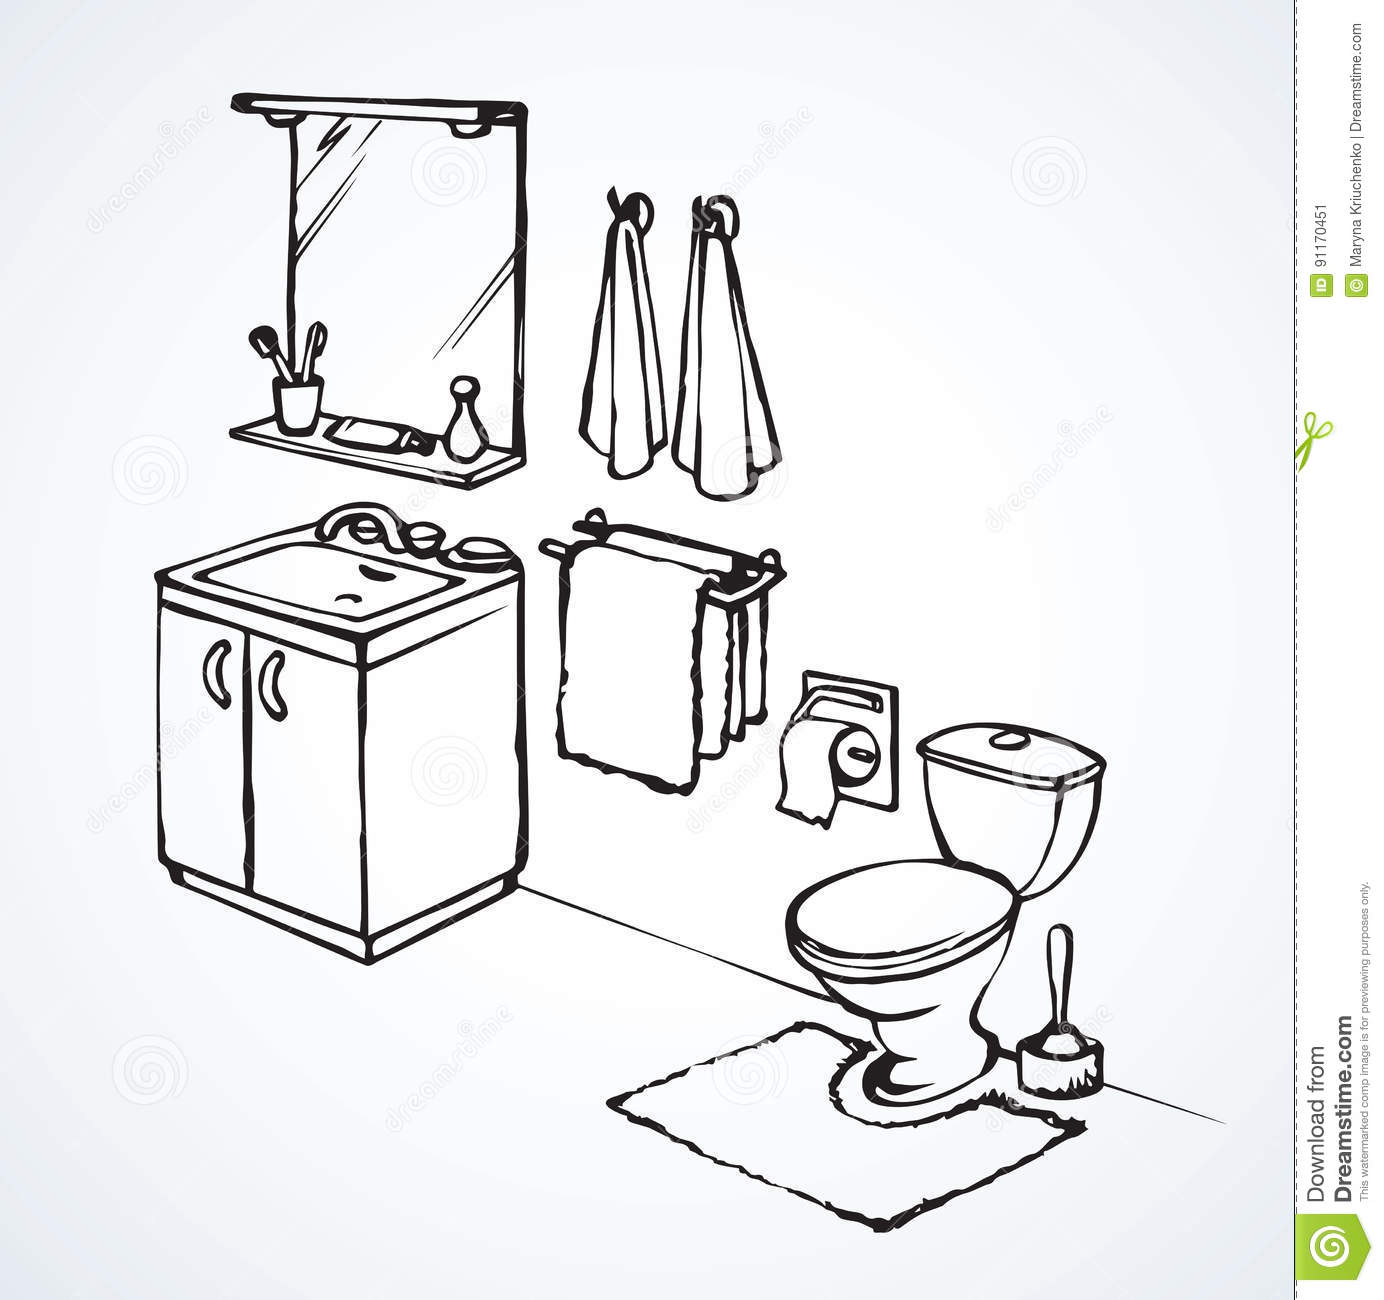 Toilet Vector Drawing Stock Vector Illustration Of